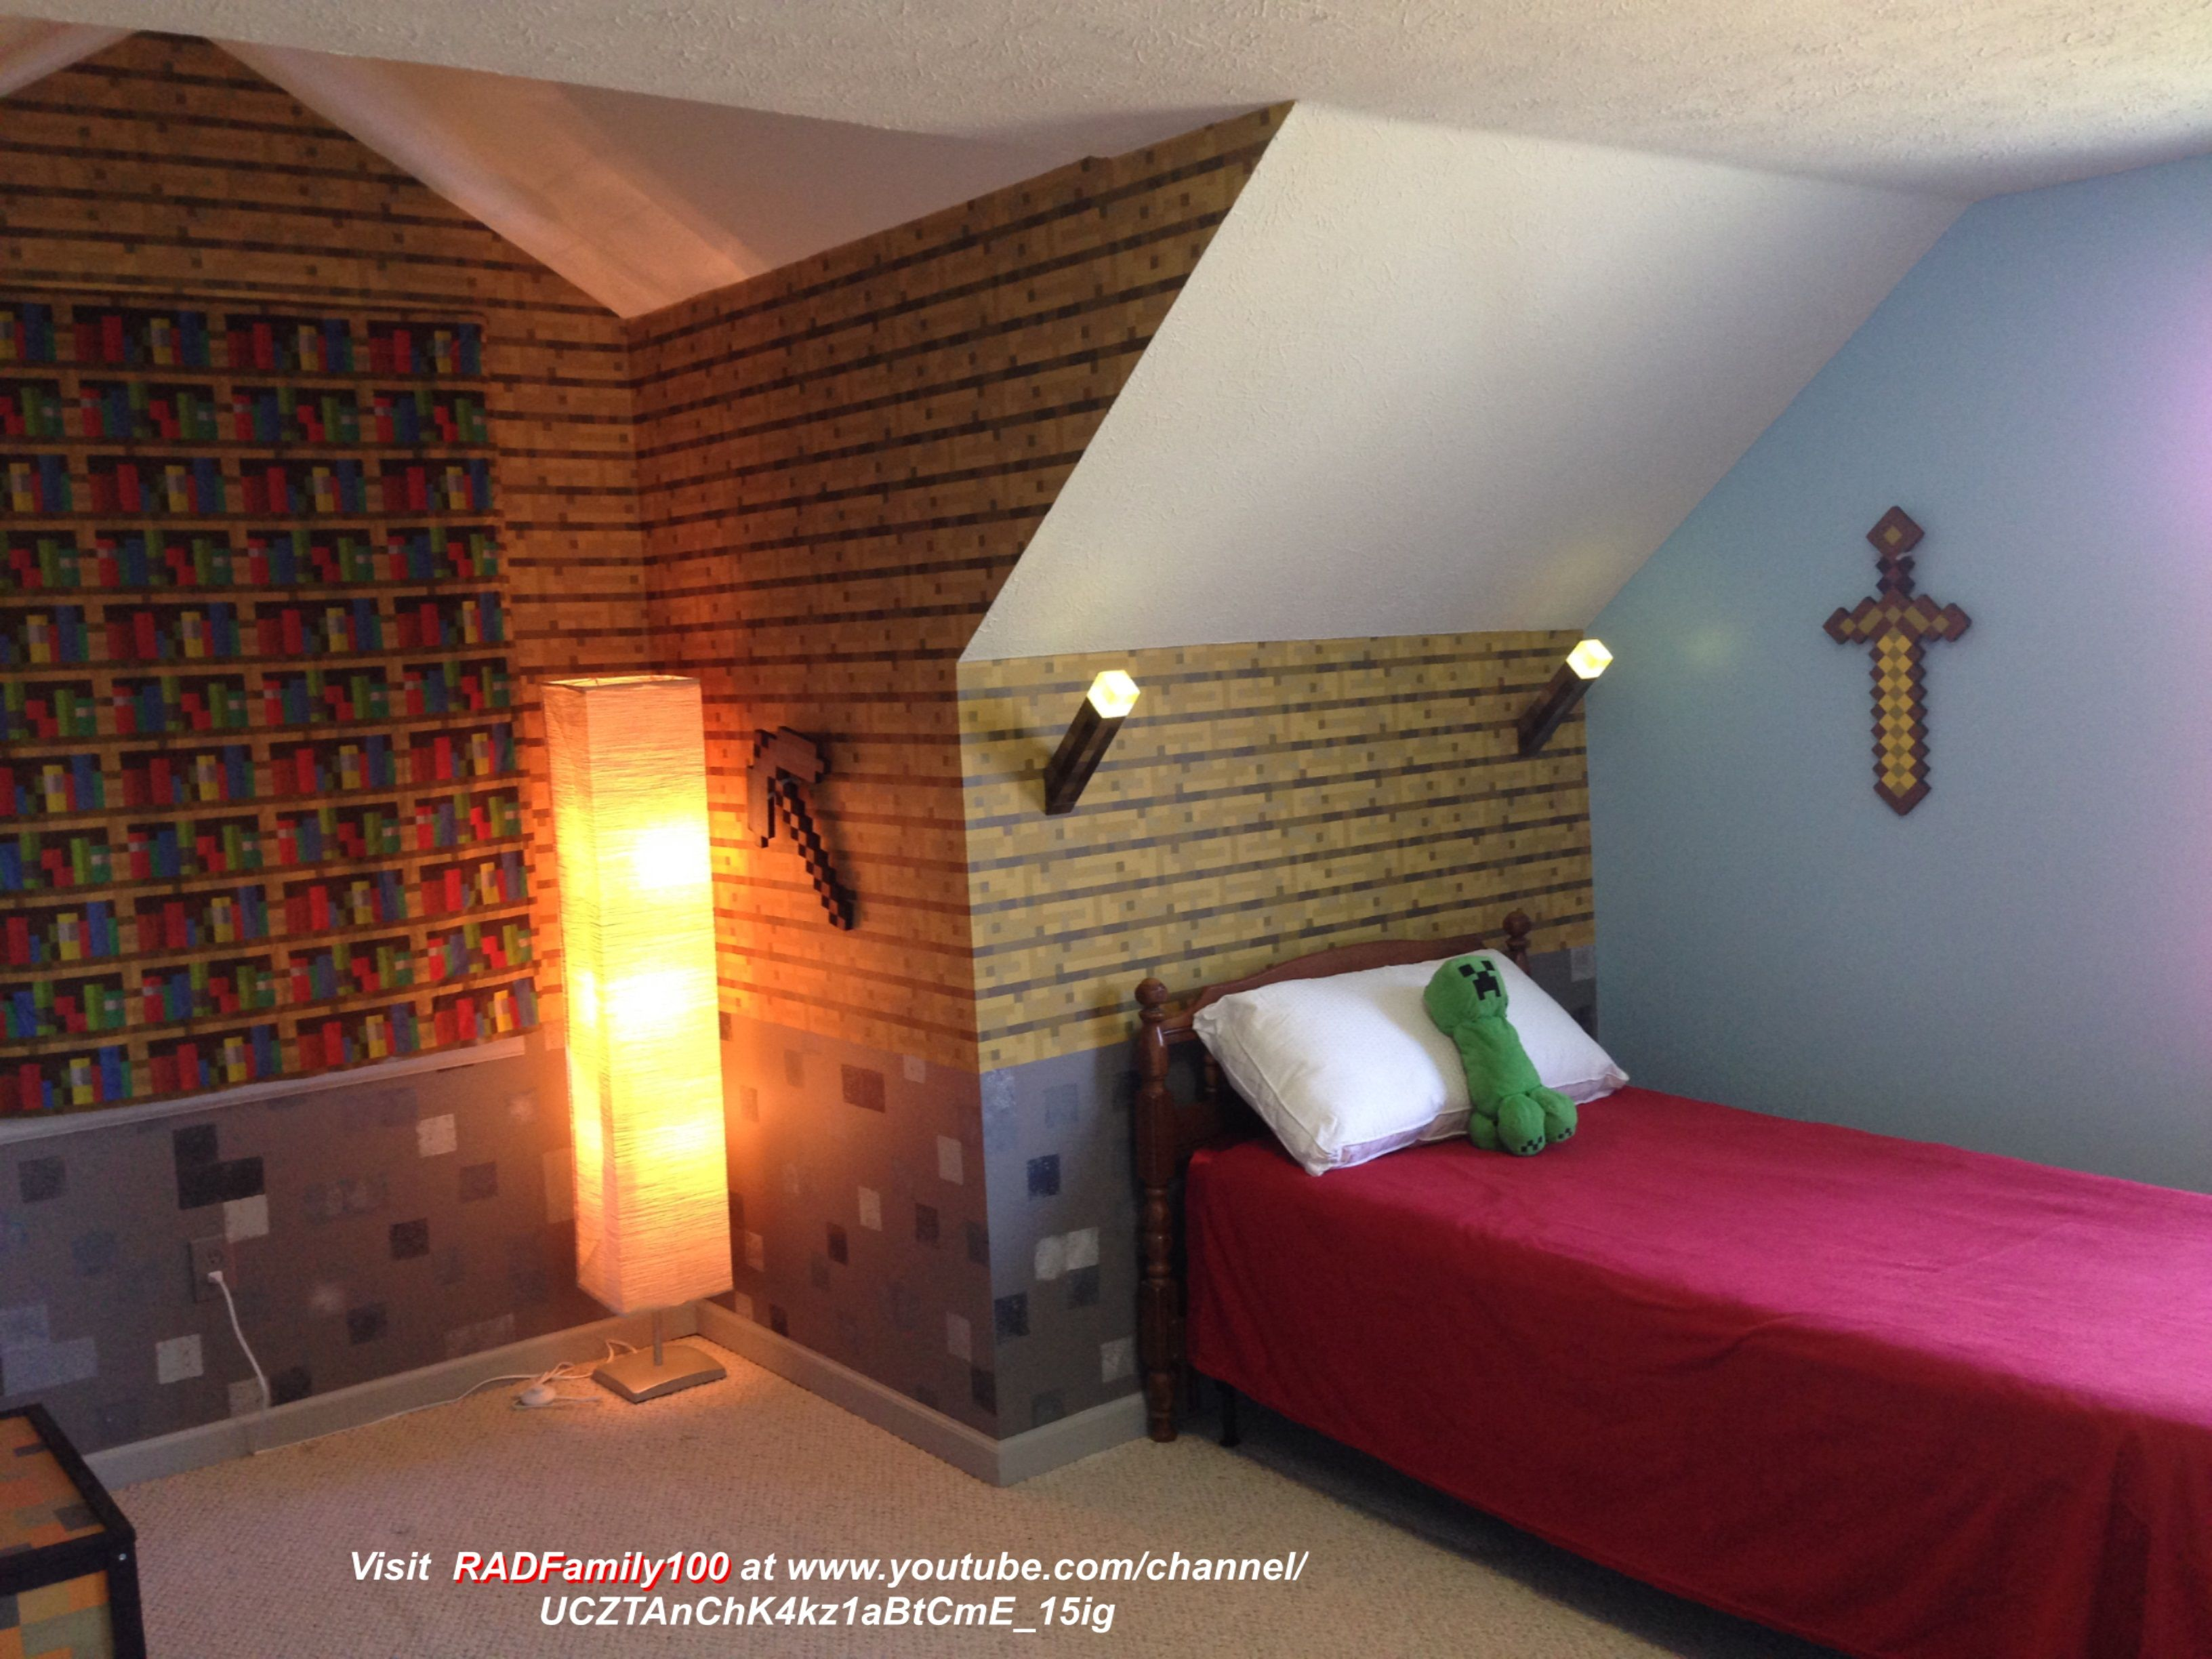 Minecraft Themed Bedroom I Made The Bed Area To Look Like